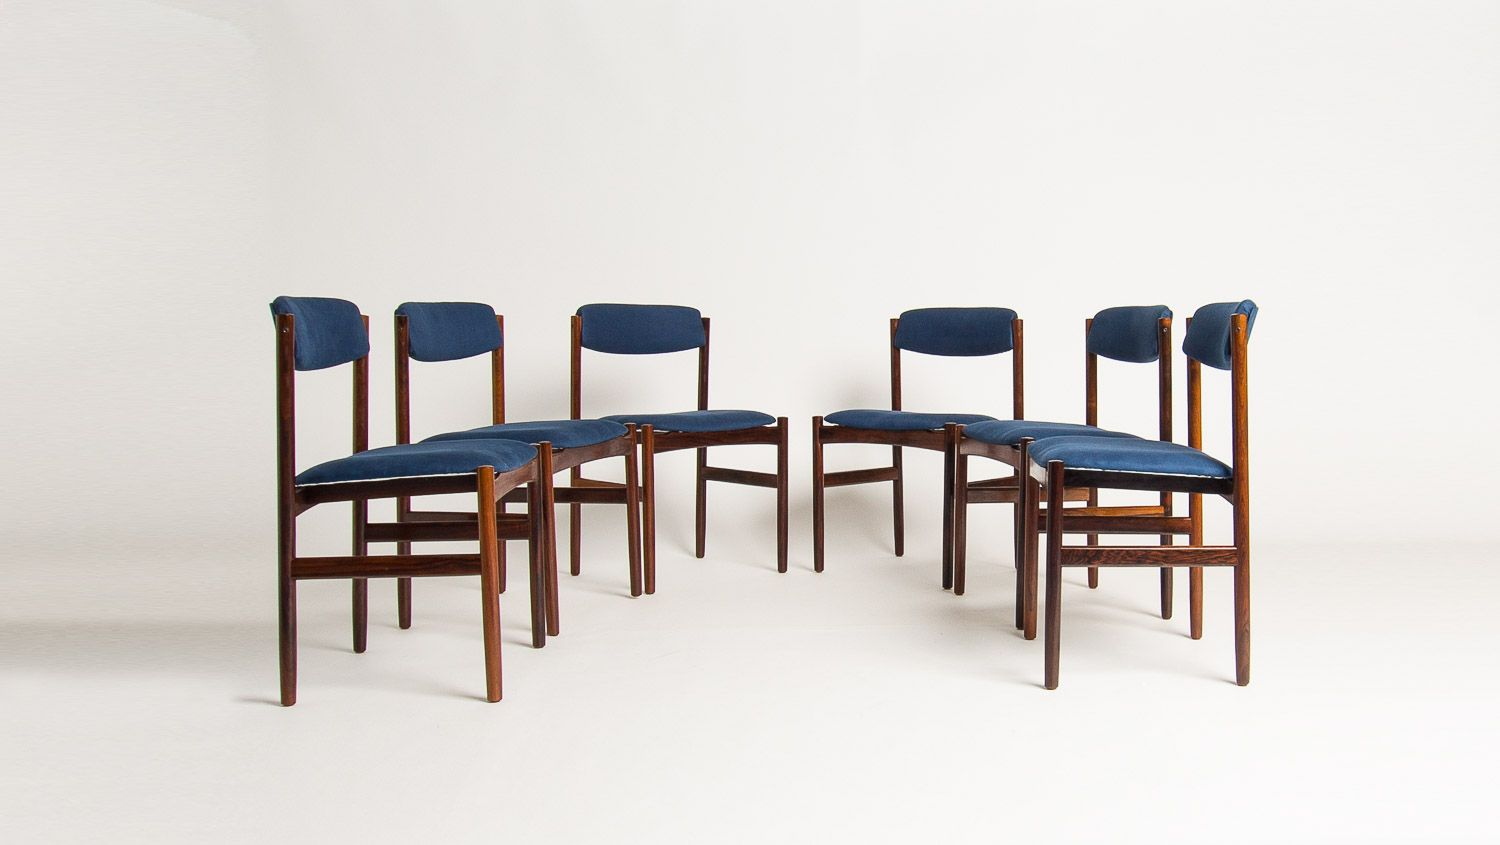 Picture of: Set Of 6 Vintage Dining Chairs In Rosewood And Blue Linen 1960s Design Market